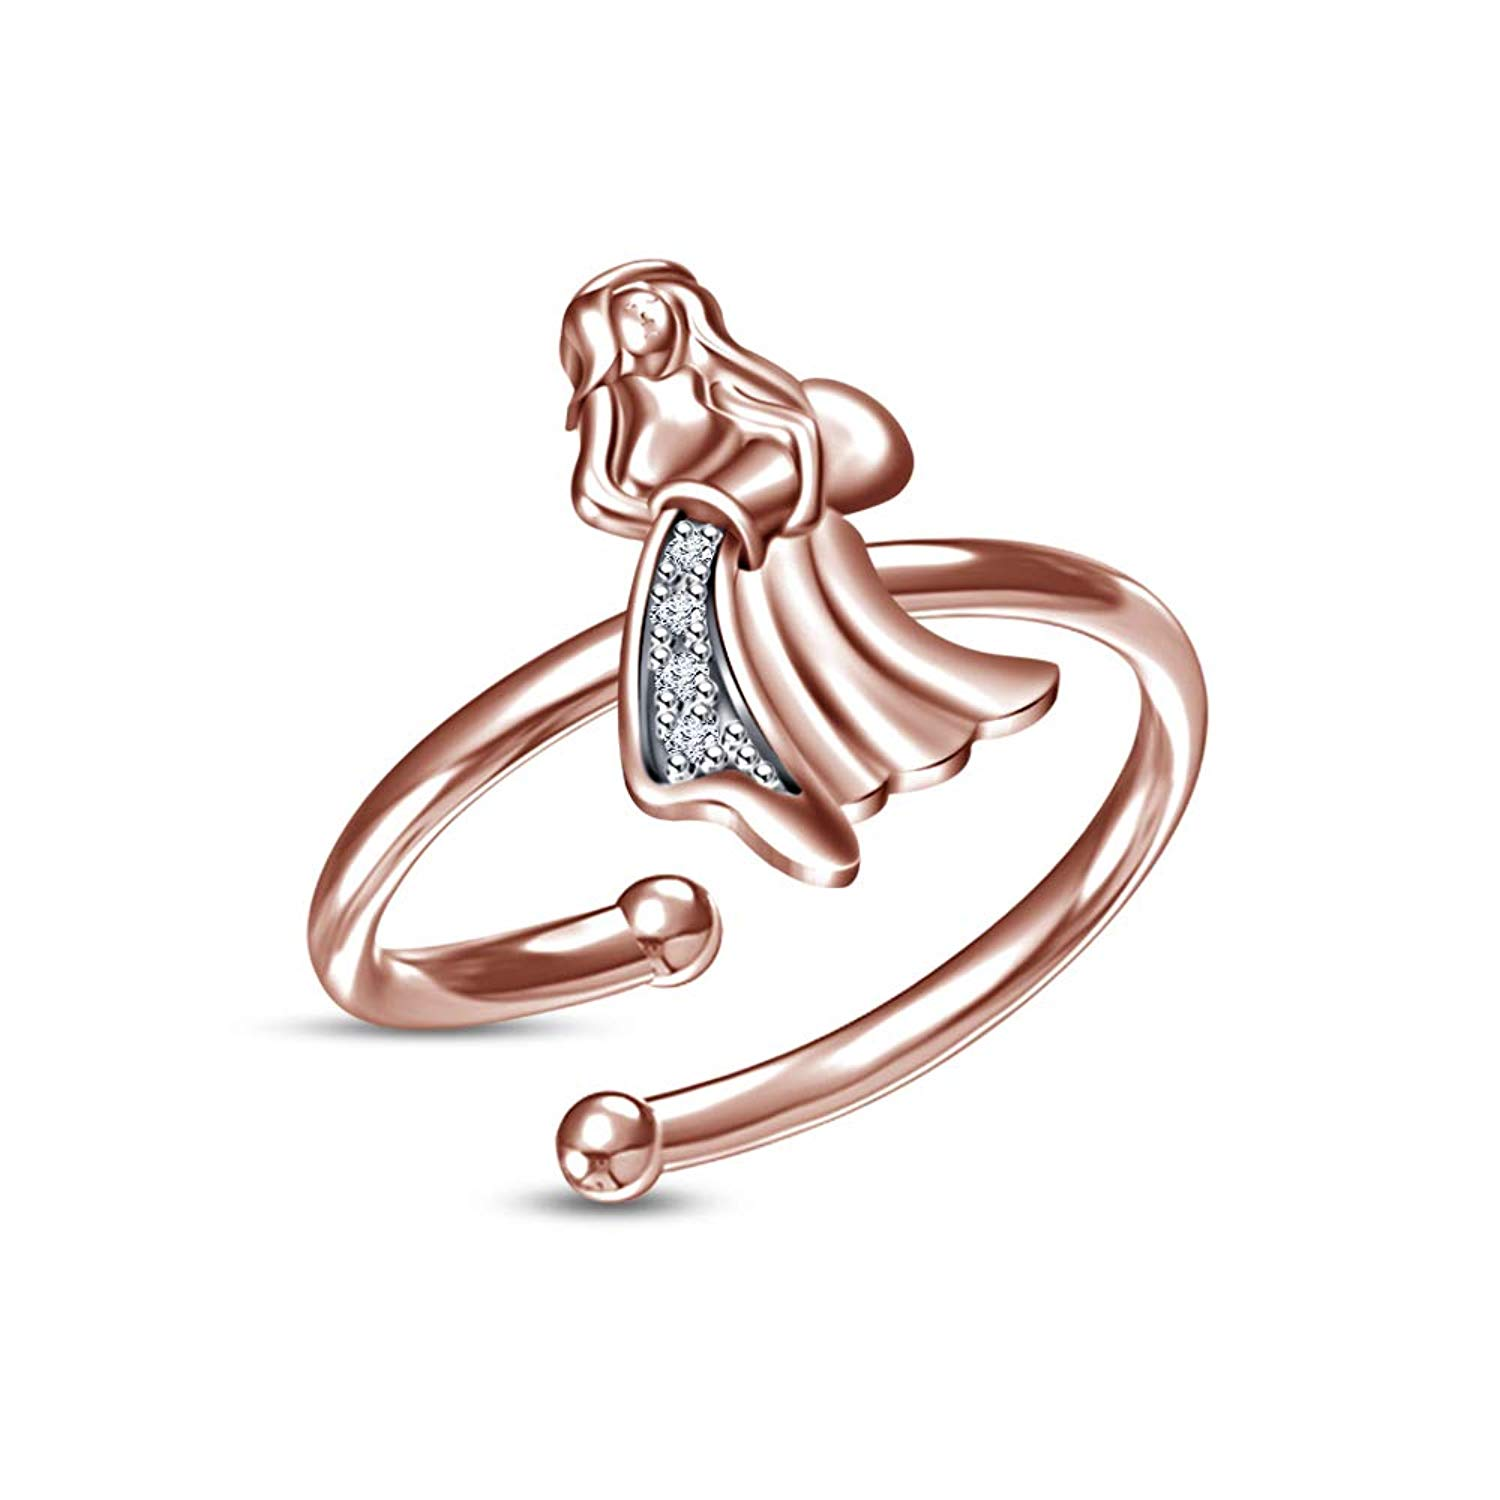 Toe Rings Heart Shape Adjustable Solid Metal Toe Ring 14 K Rose Gold Plated 925 Silver